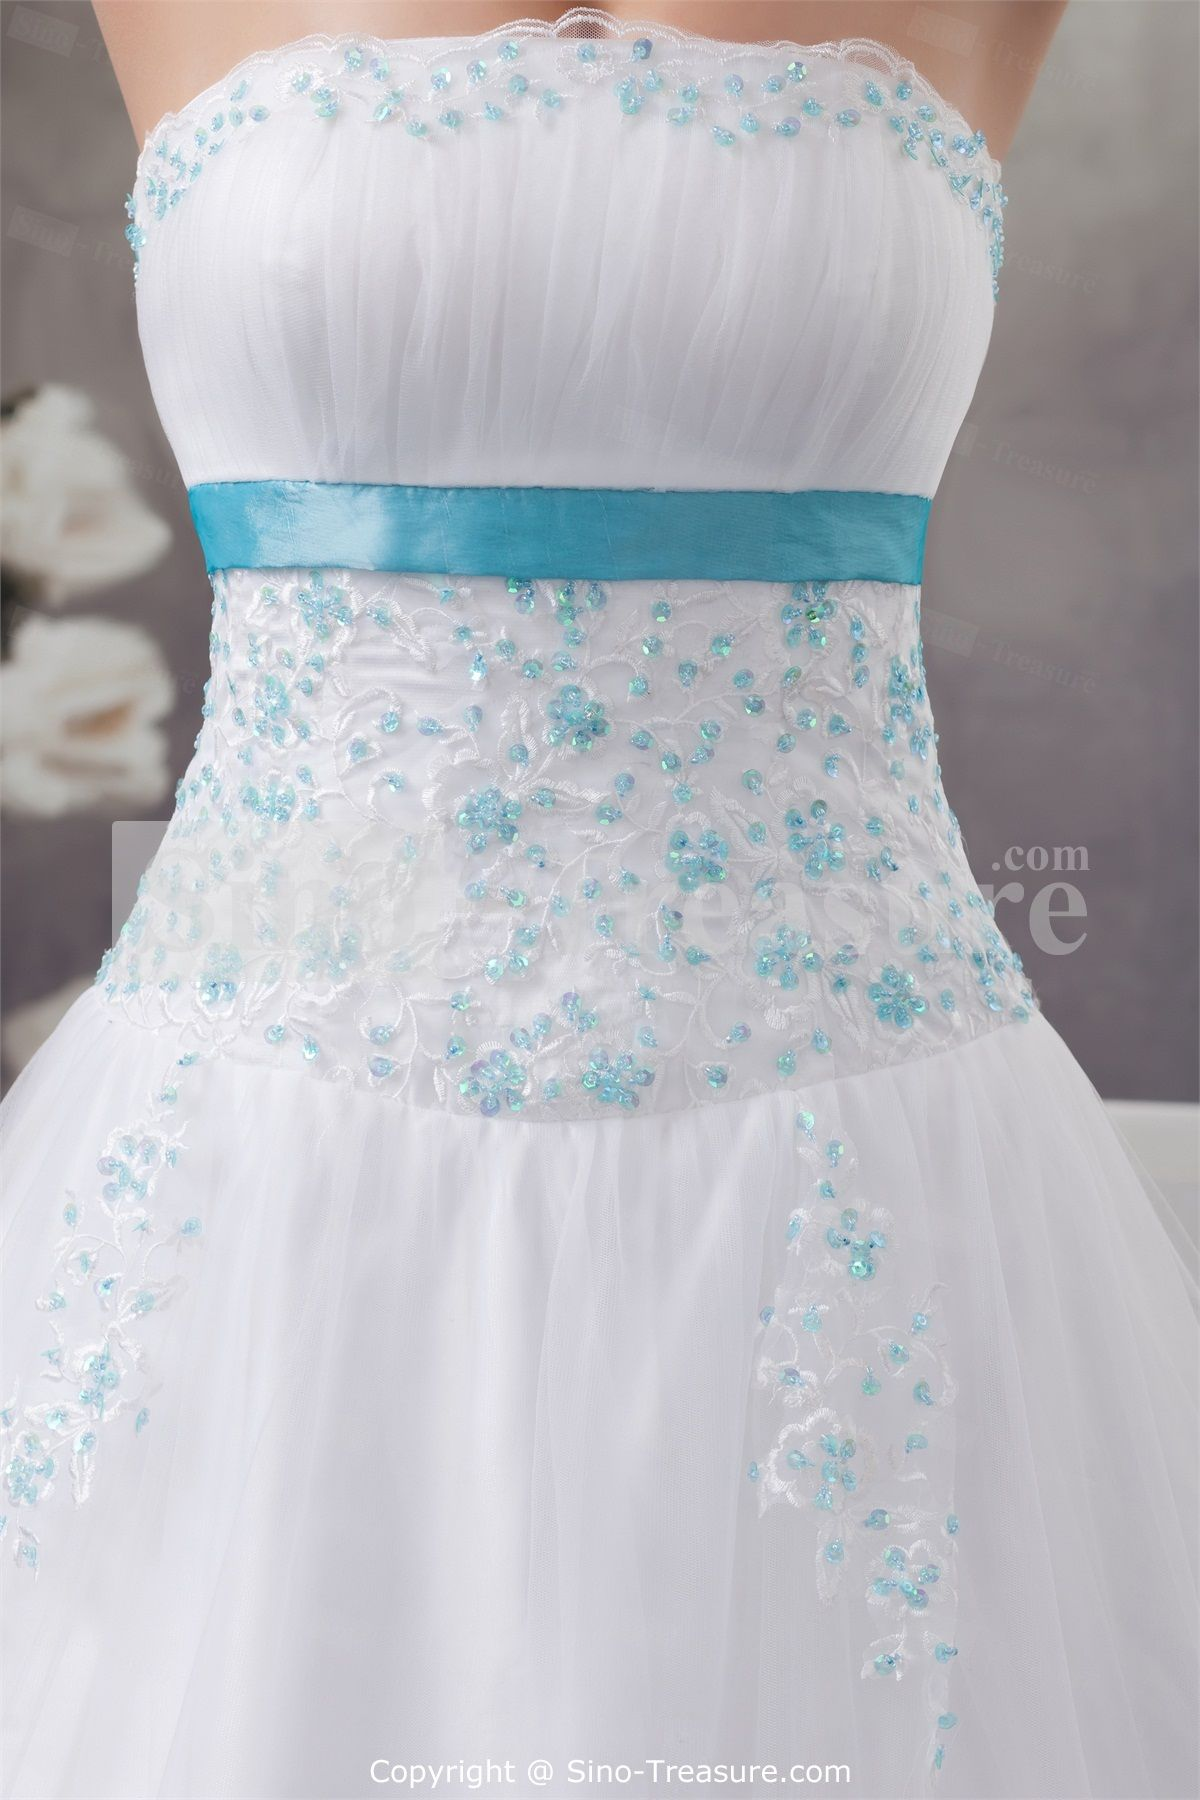 Bling Wedding Gown | Wedding Dresses Ball Gown With Bling Strapless